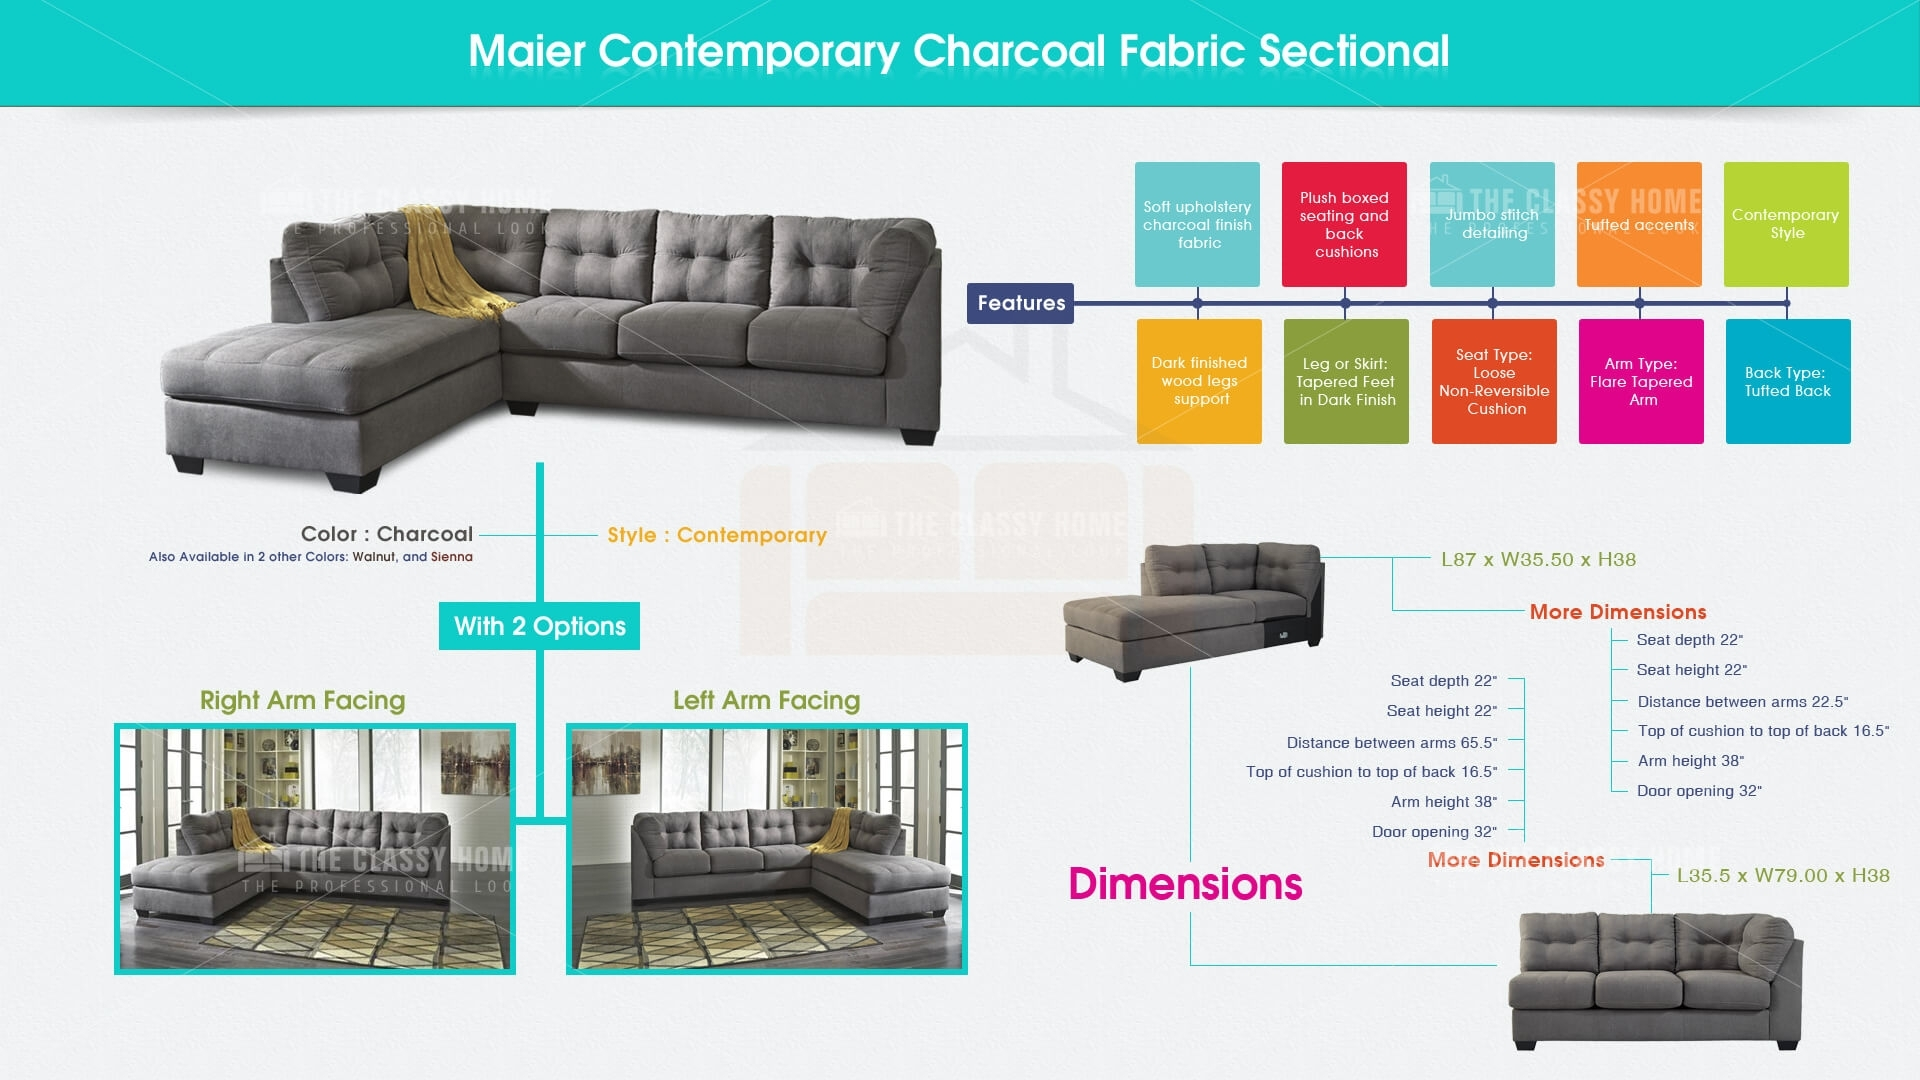 Ashley Furniture Maier Charcoal Raf Chaise Sectional | The Classy Home Throughout Lucy Grey 2 Piece Sleeper Sectionals With Laf Chaise (View 24 of 25)